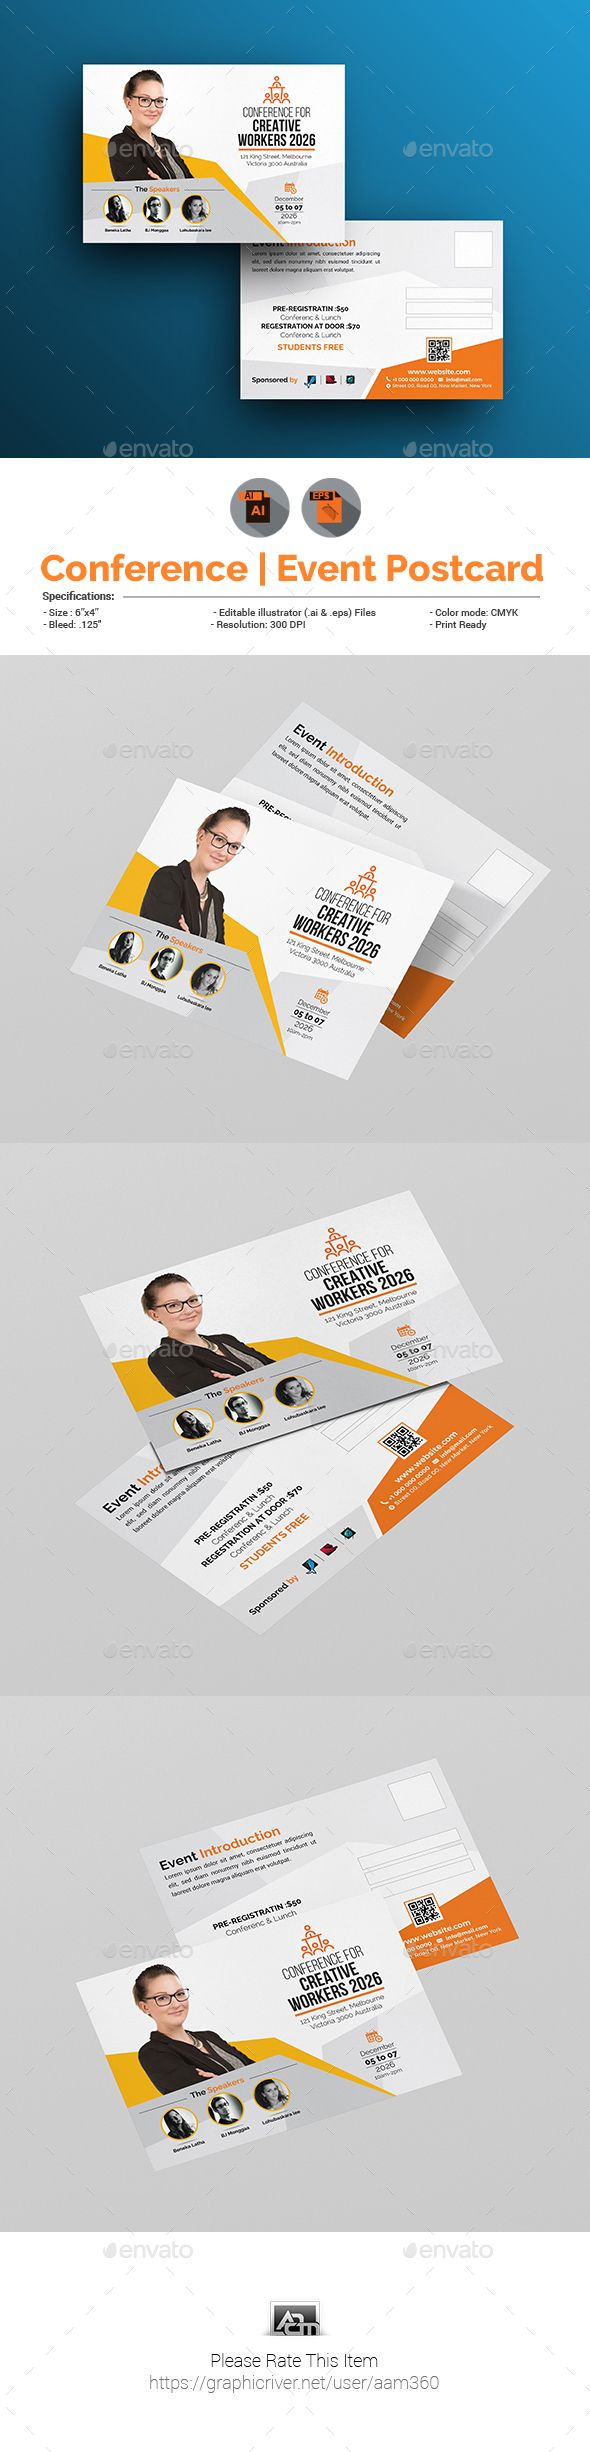 Event Conference Postcard Template Pinterest Postcard Template - Event postcard template